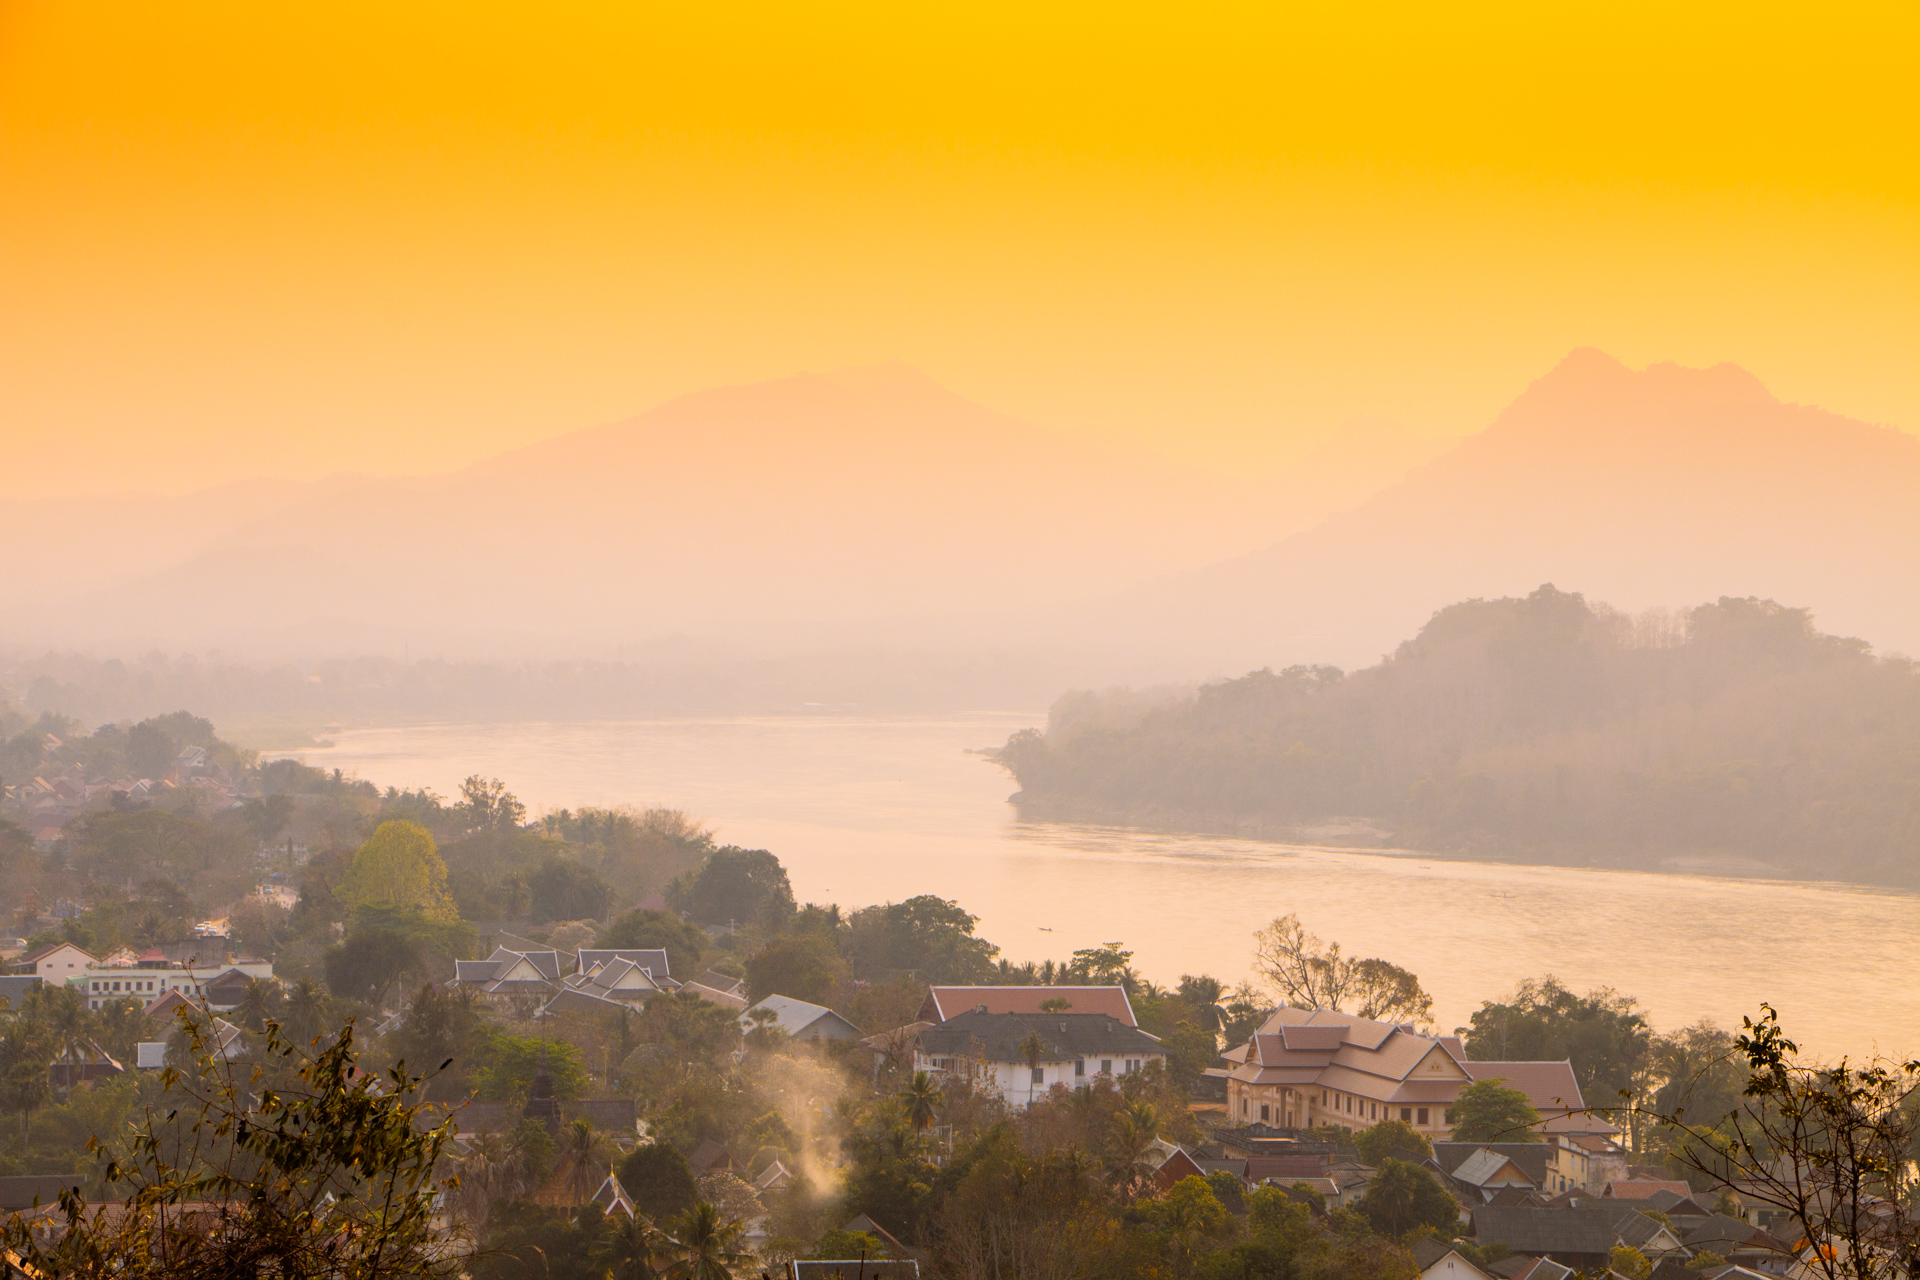 Sunset over Luang Prabang from Mount Phousi